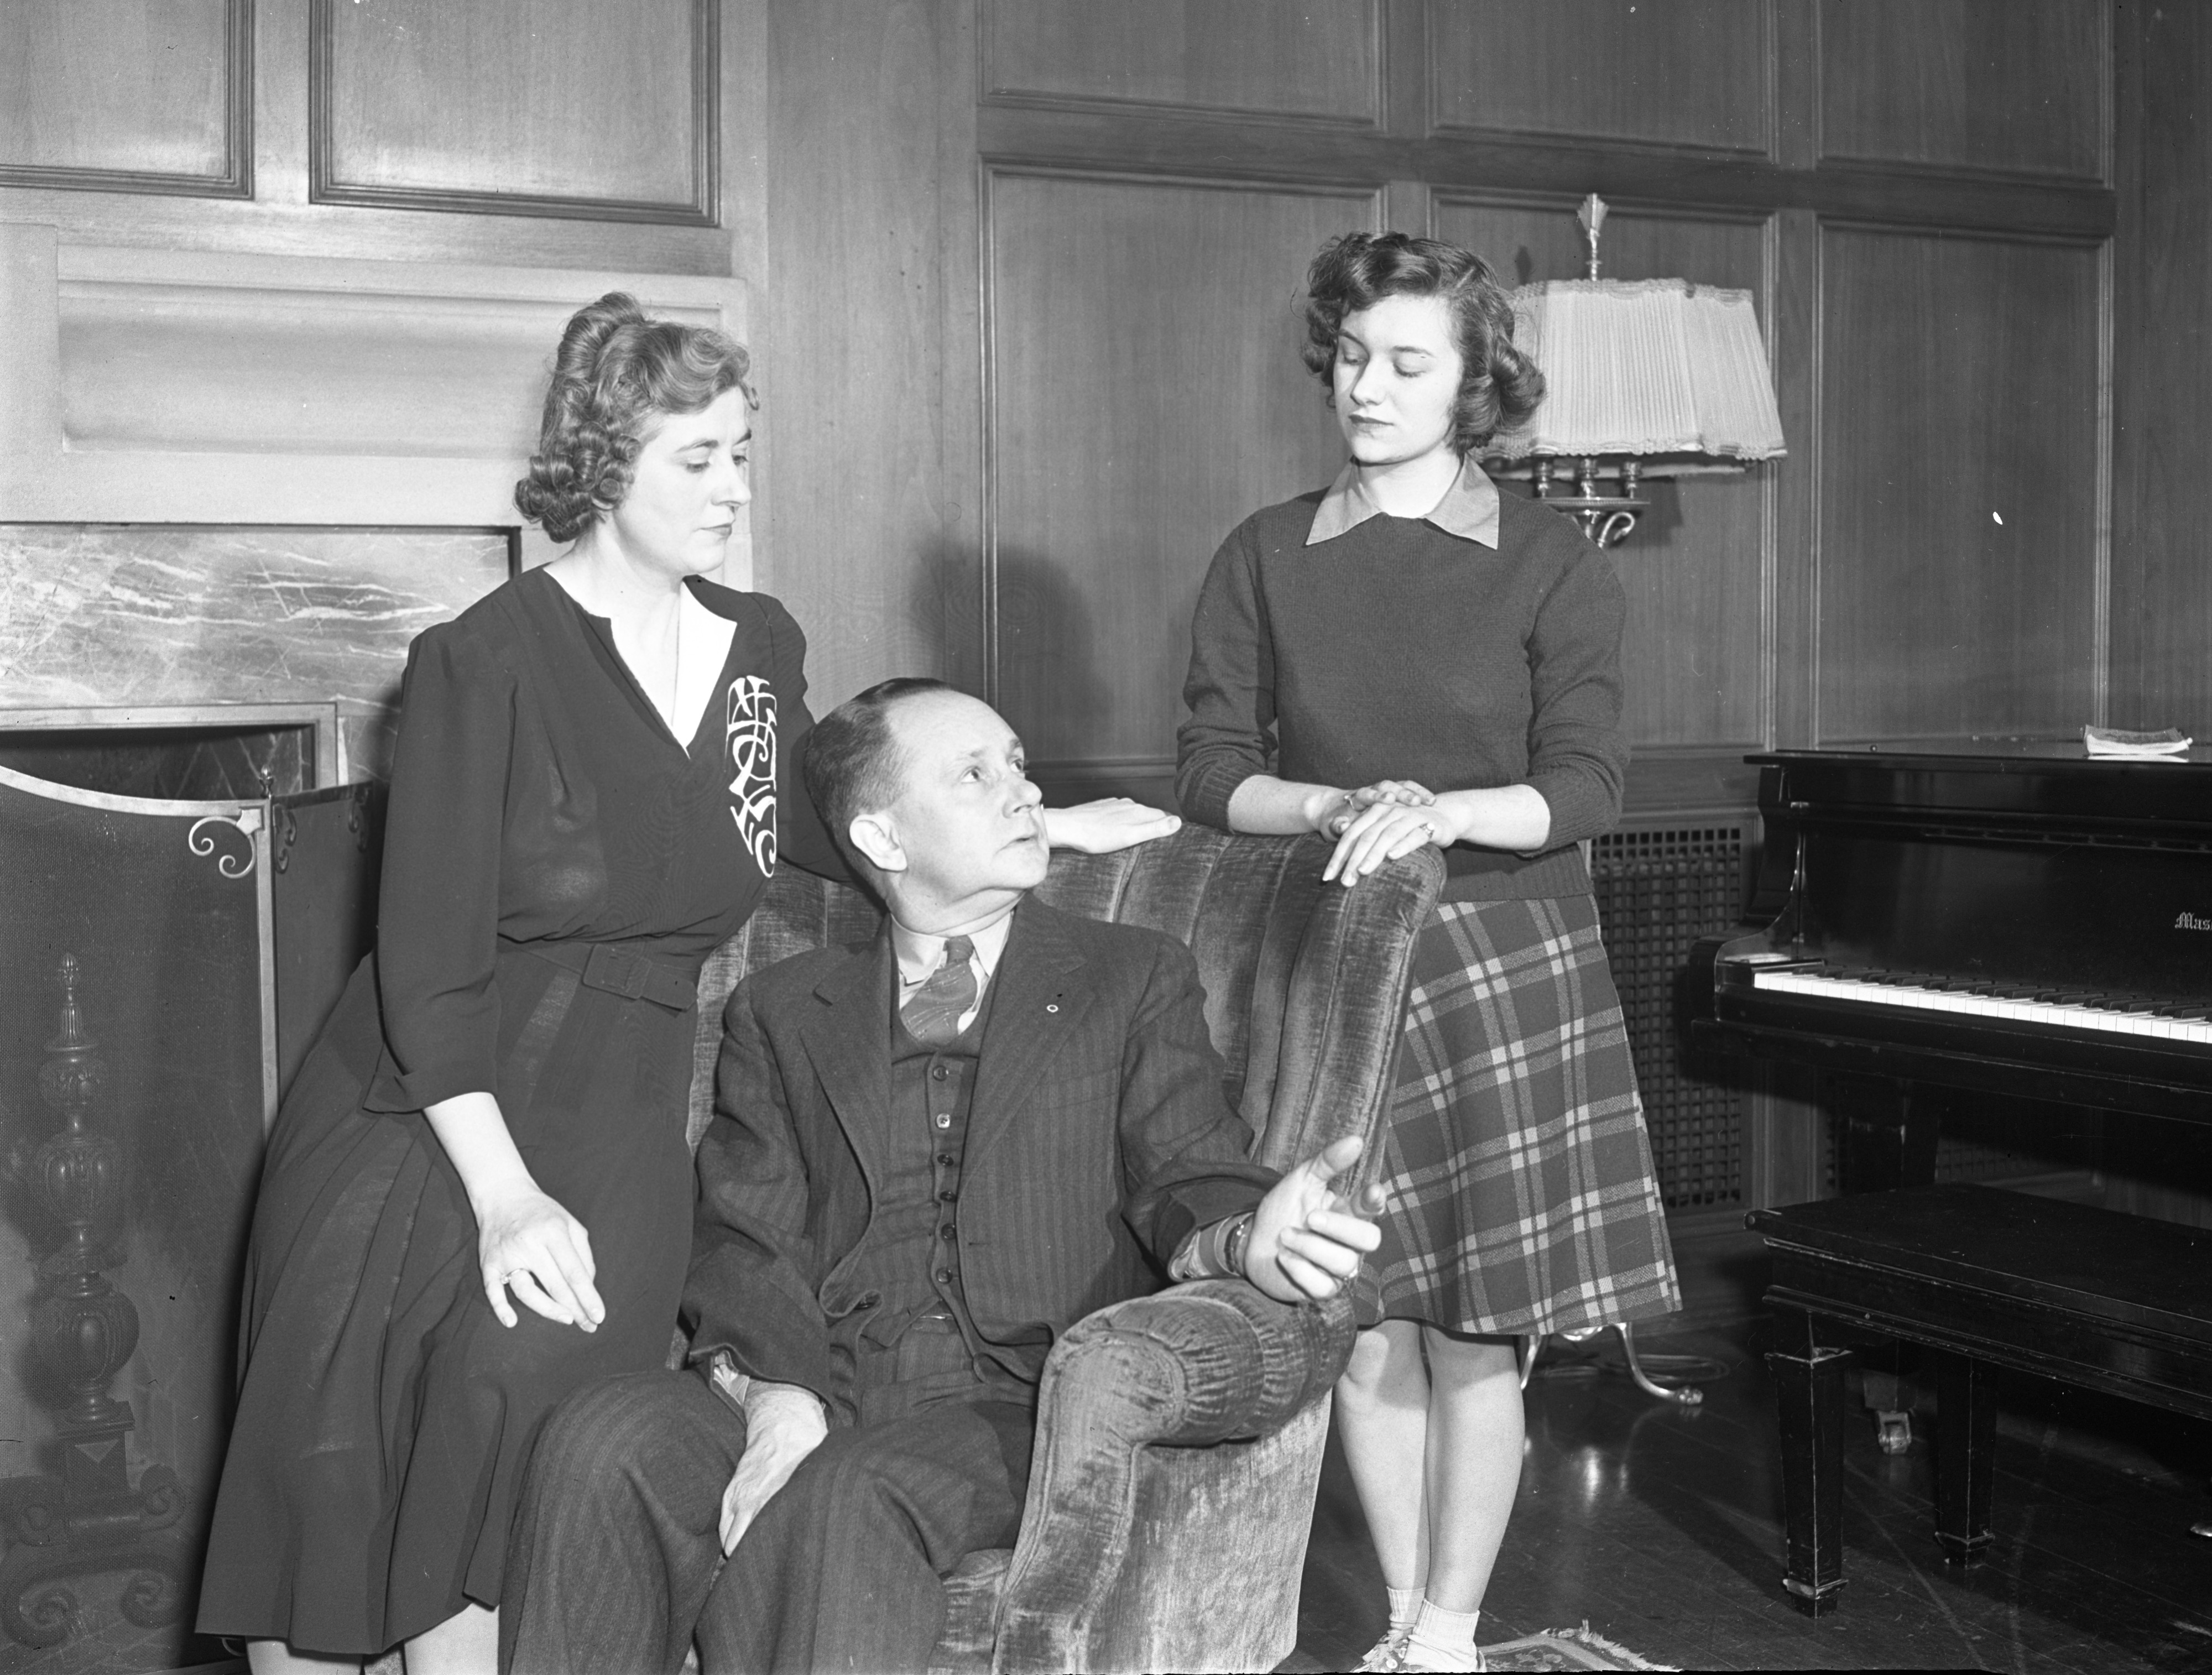 Ann Arbor Civic Theatre Cast Members Rehearse A Scene From 'The Thirteenth Chair,' February 1942 image